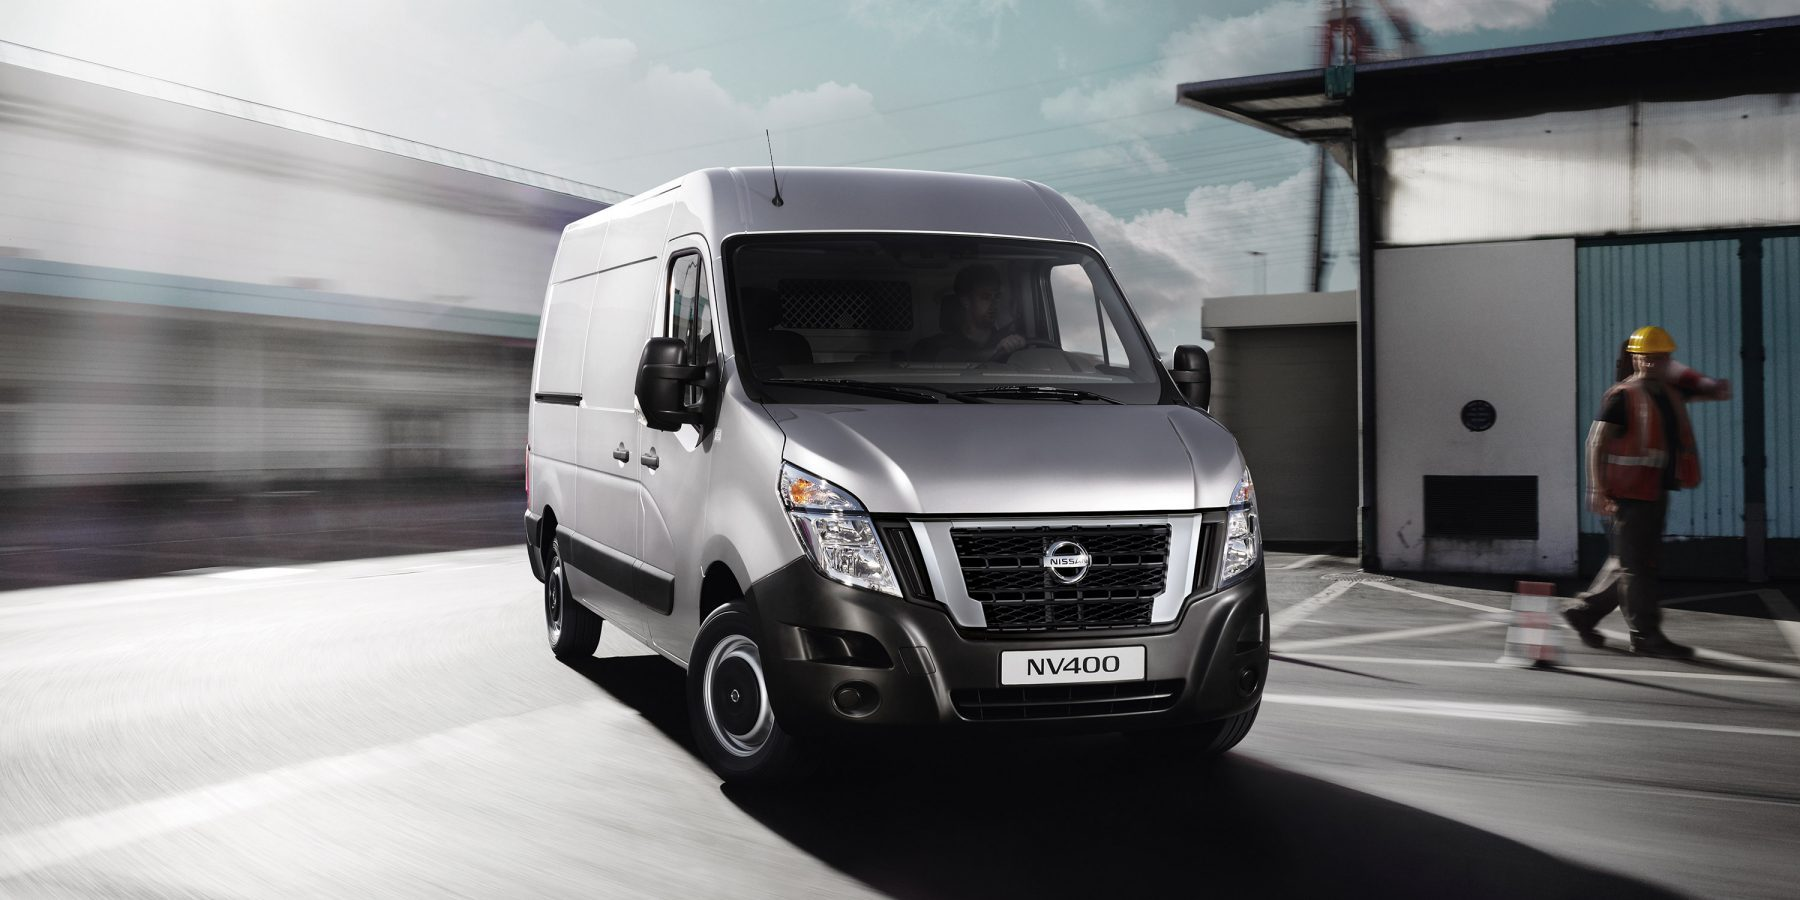 Nissan NV400 - Pearl white 3/4 front view